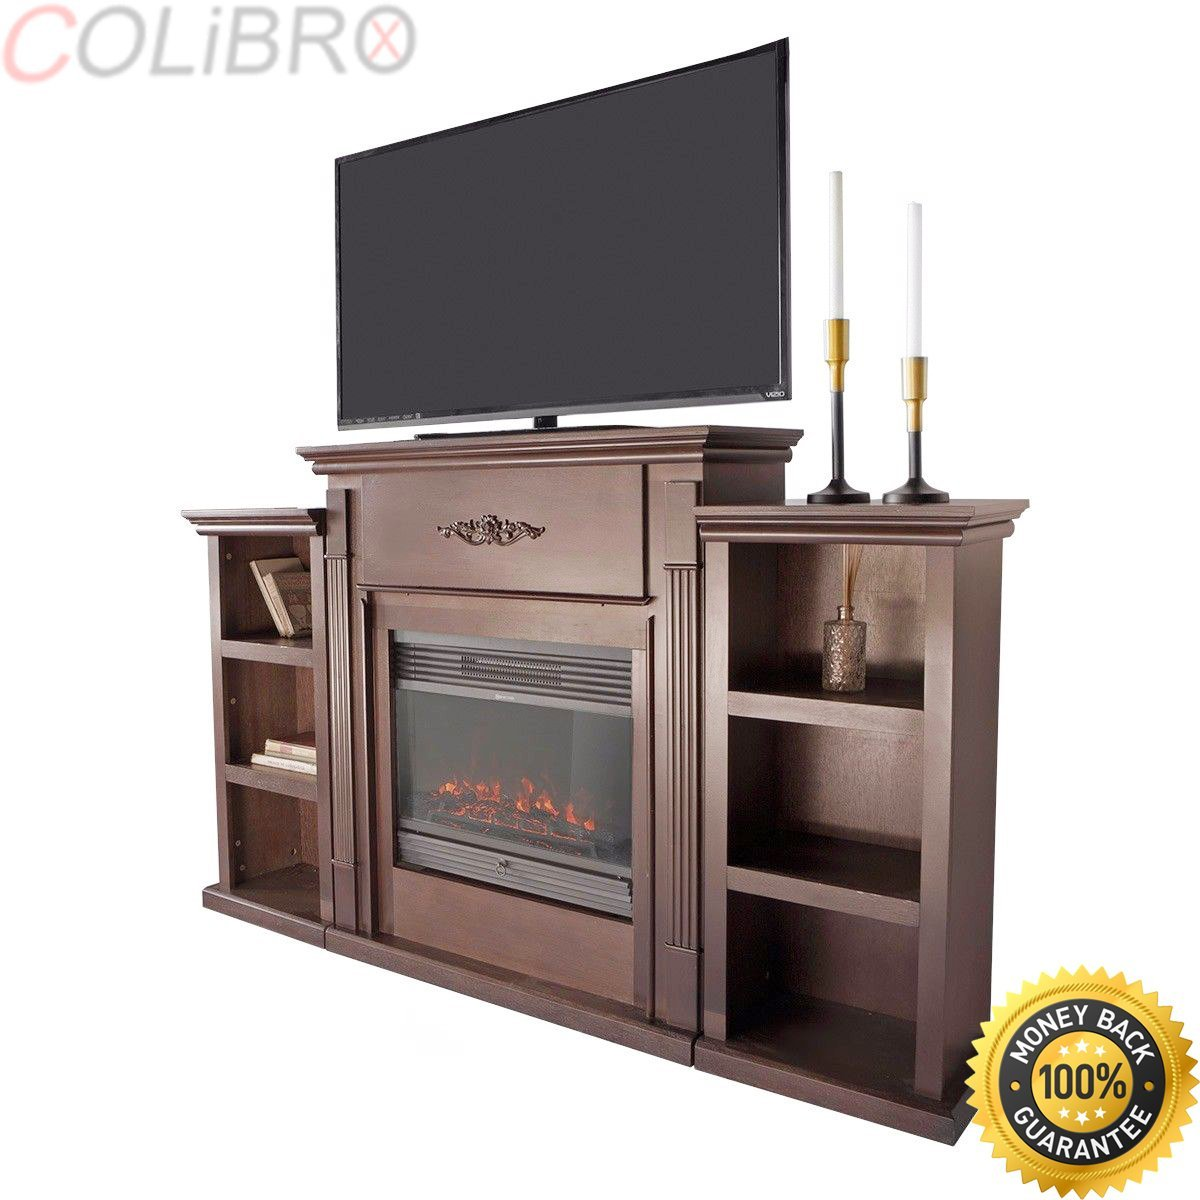 Superb Cheap Amish Fireplace Mantels Find Amish Fireplace Mantels Interior Design Ideas Apansoteloinfo